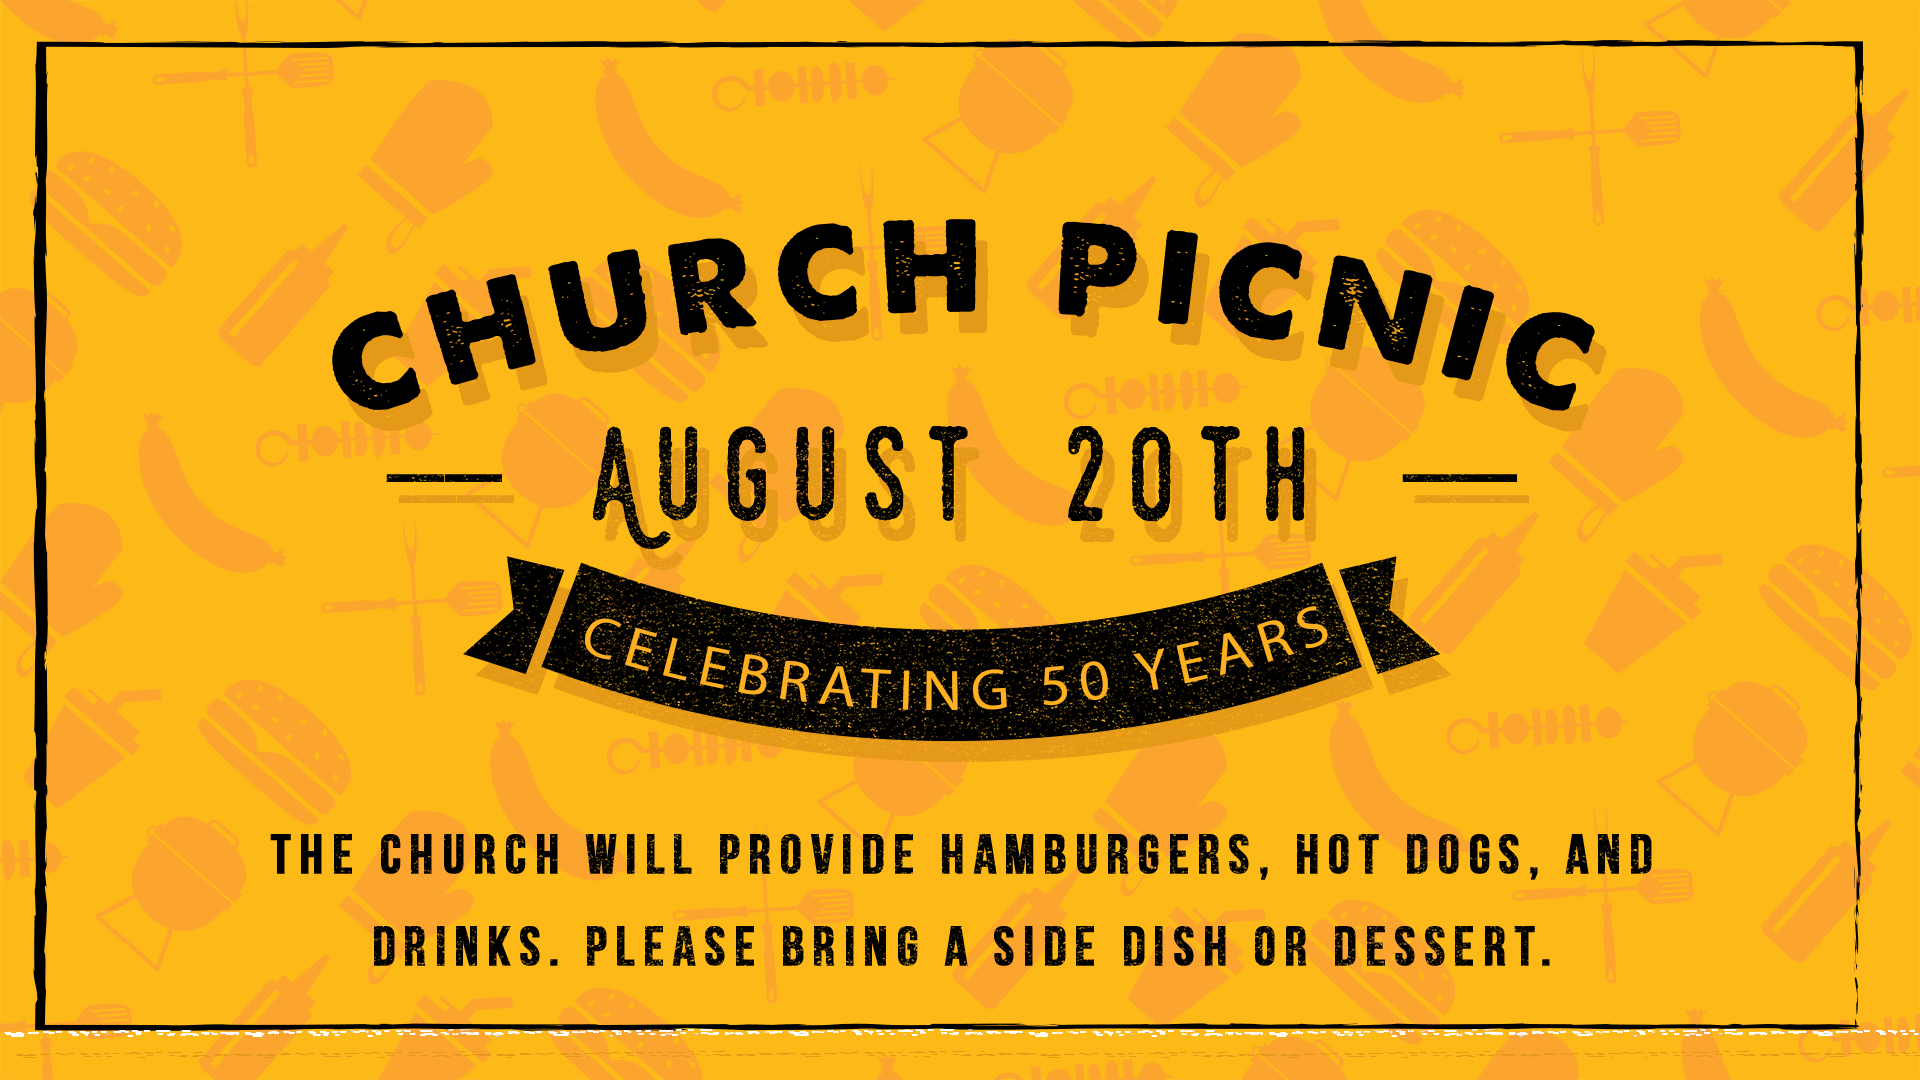 Final August 20th Picnic